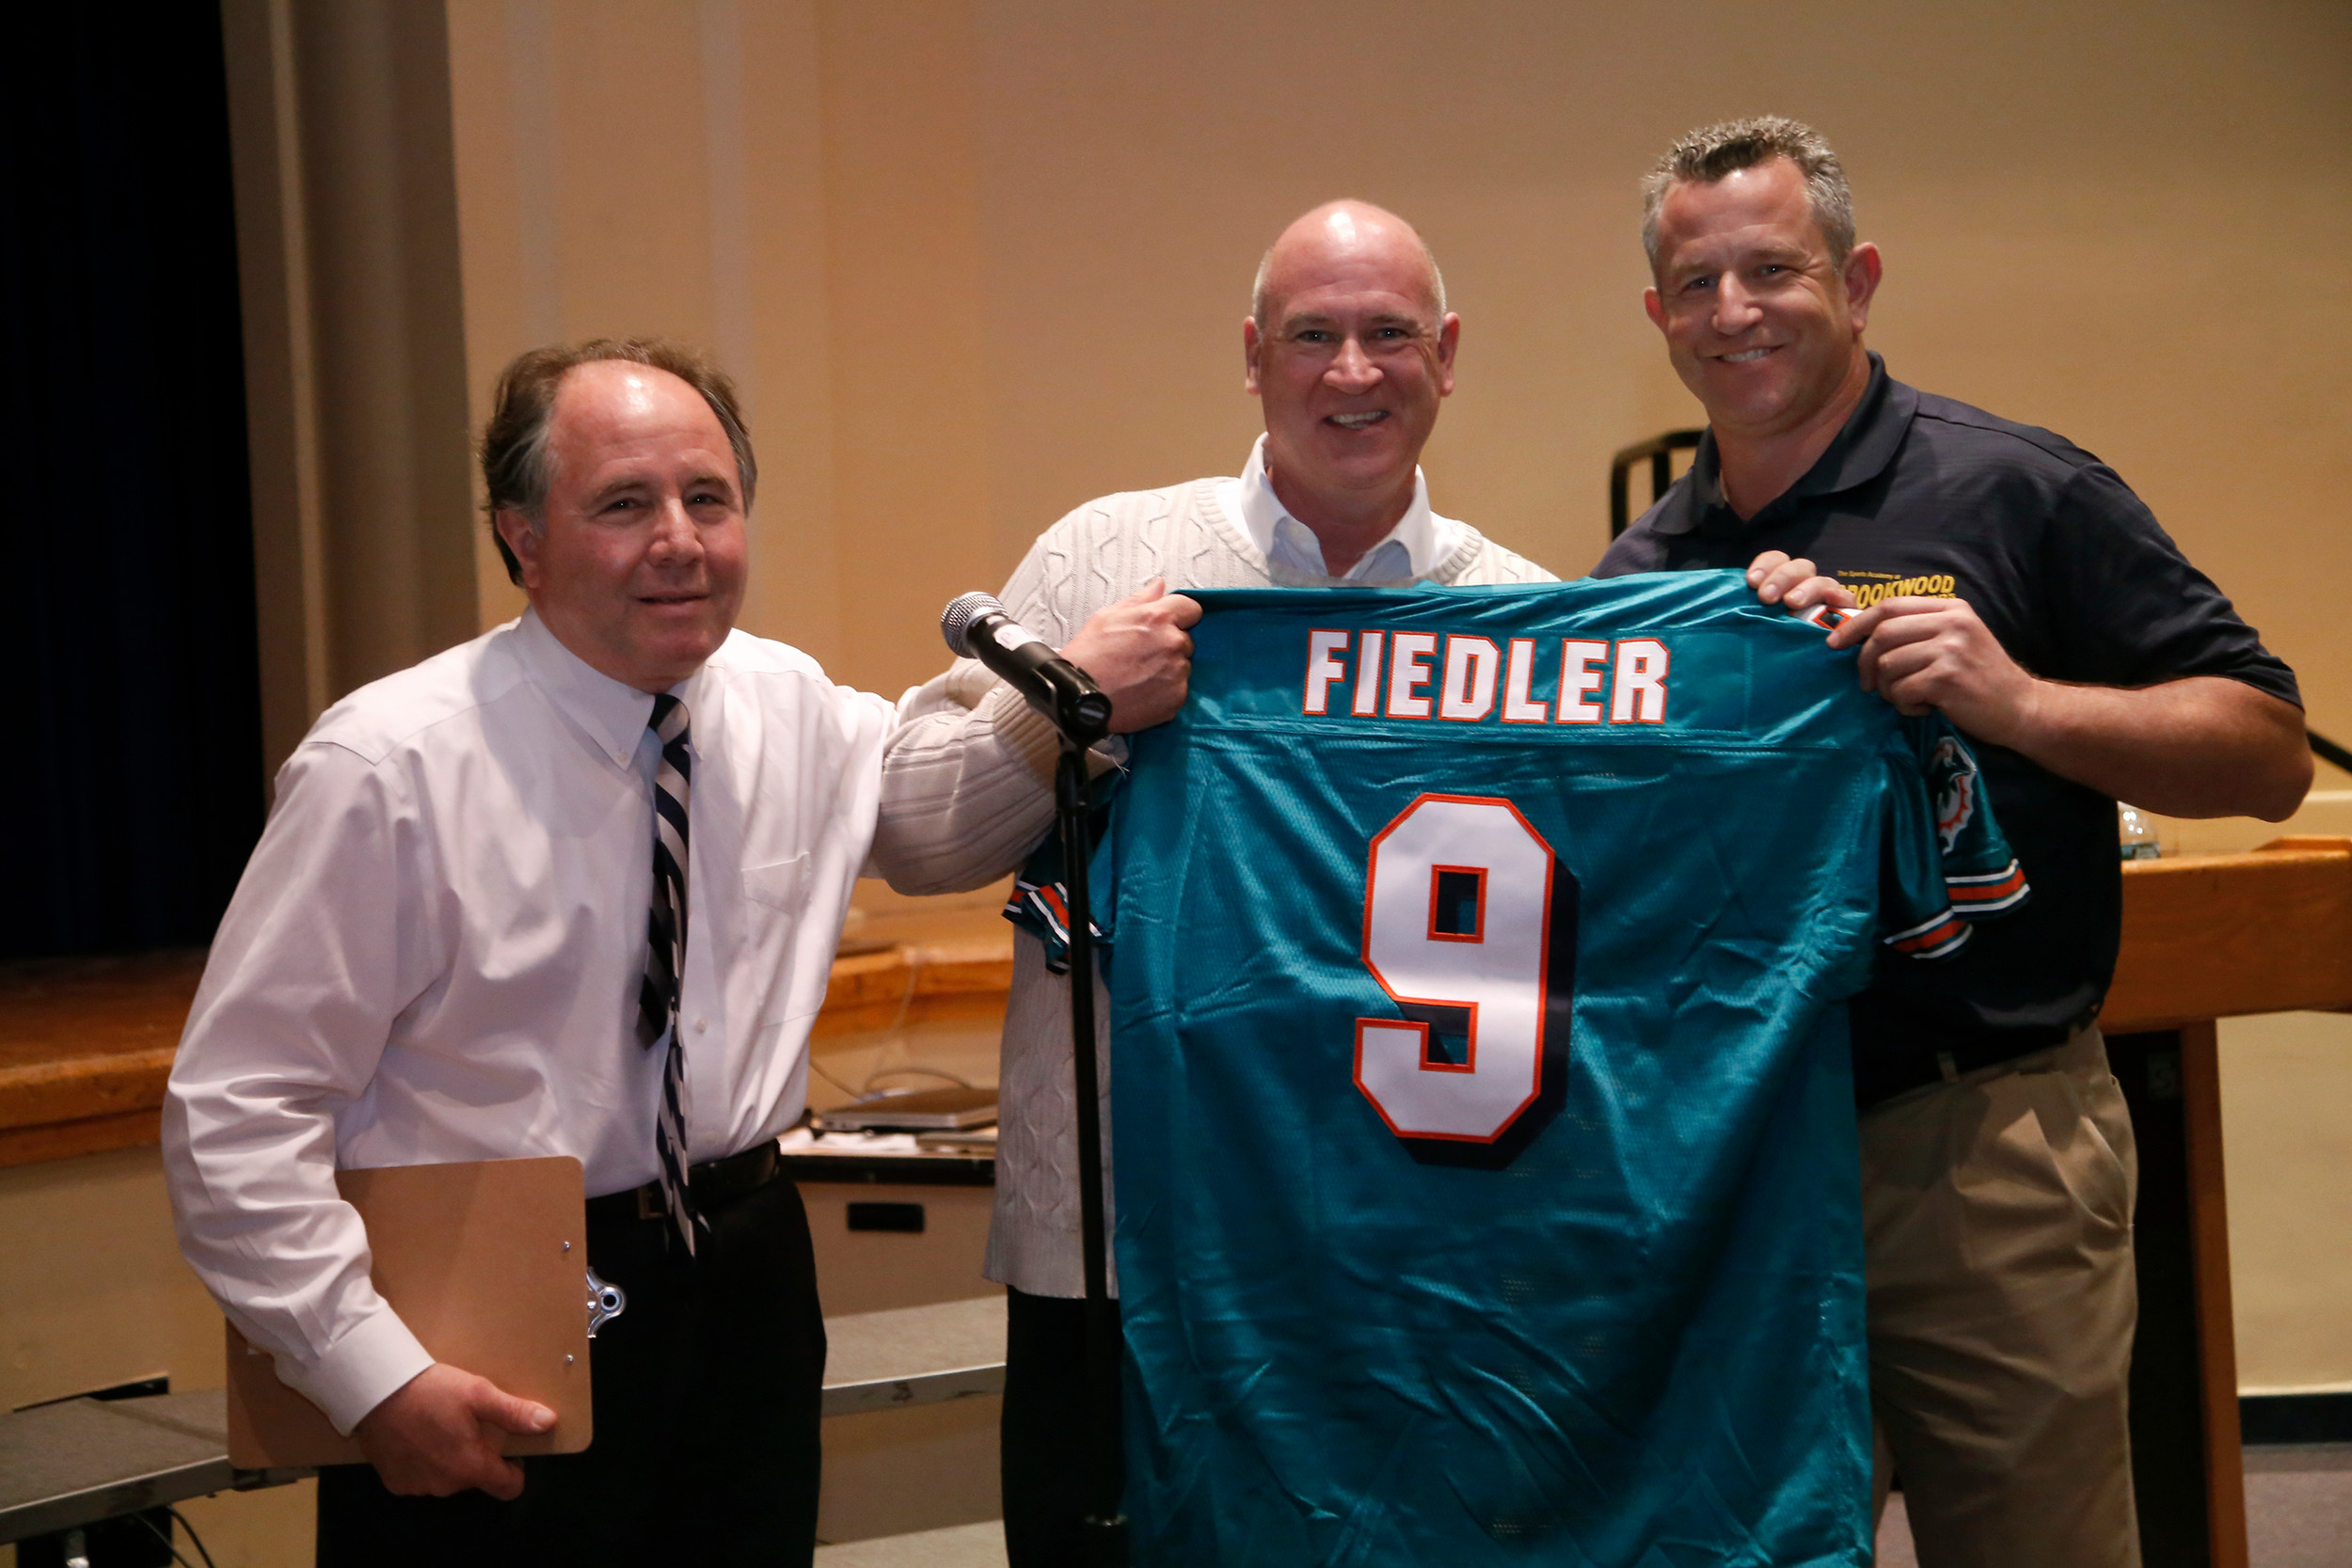 Fiedler, right, presented his Miami Dolphins jersey to his former coaches, Frank Luisi, left, and Richie Woods to be displayed in OHS's hall of fame.